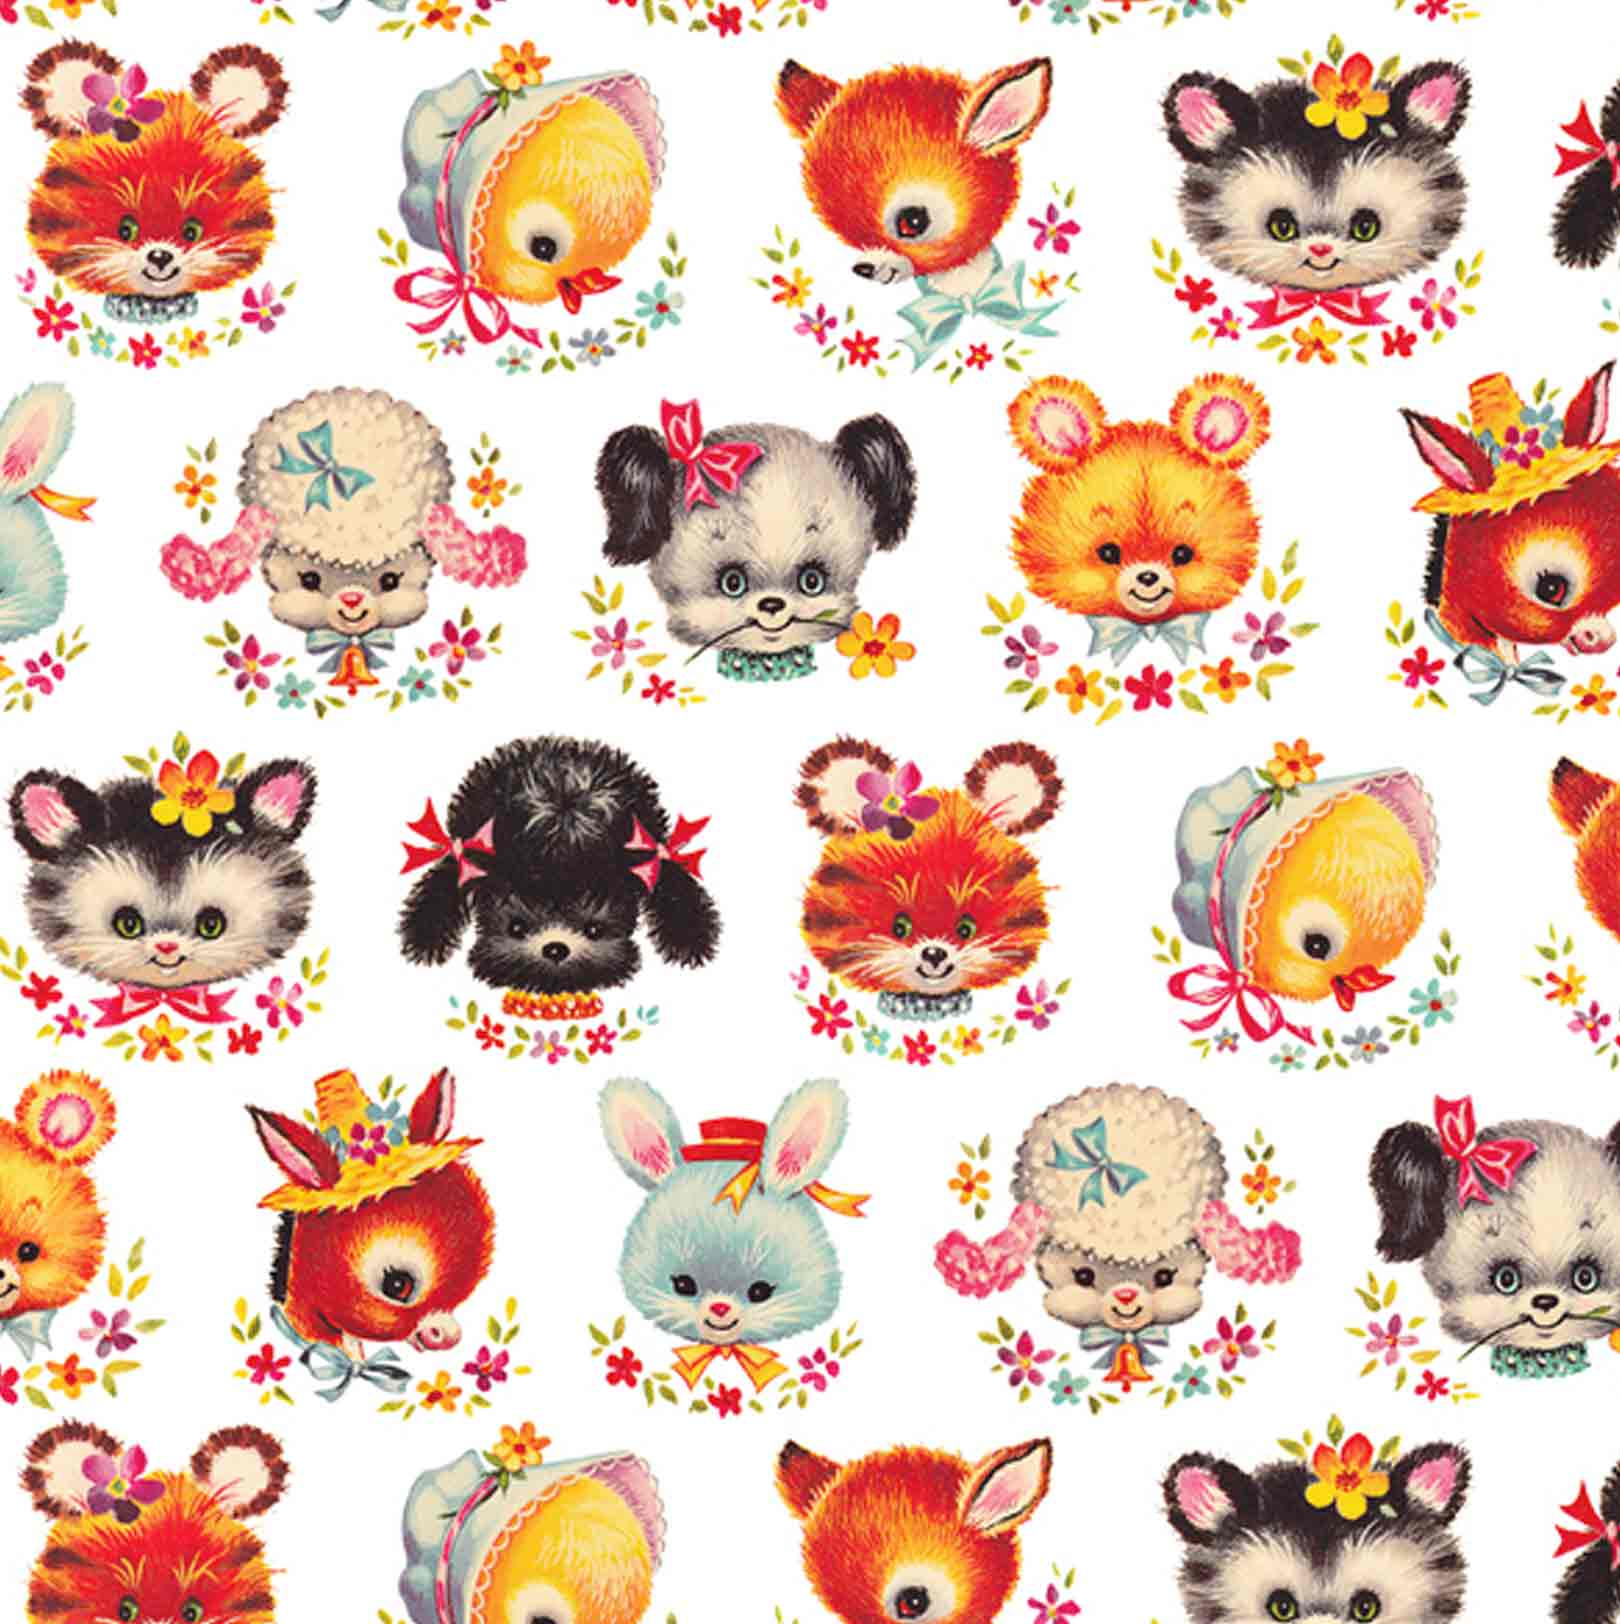 Retro Animal Faces Wrapping Paper Elfie Children S Clothes